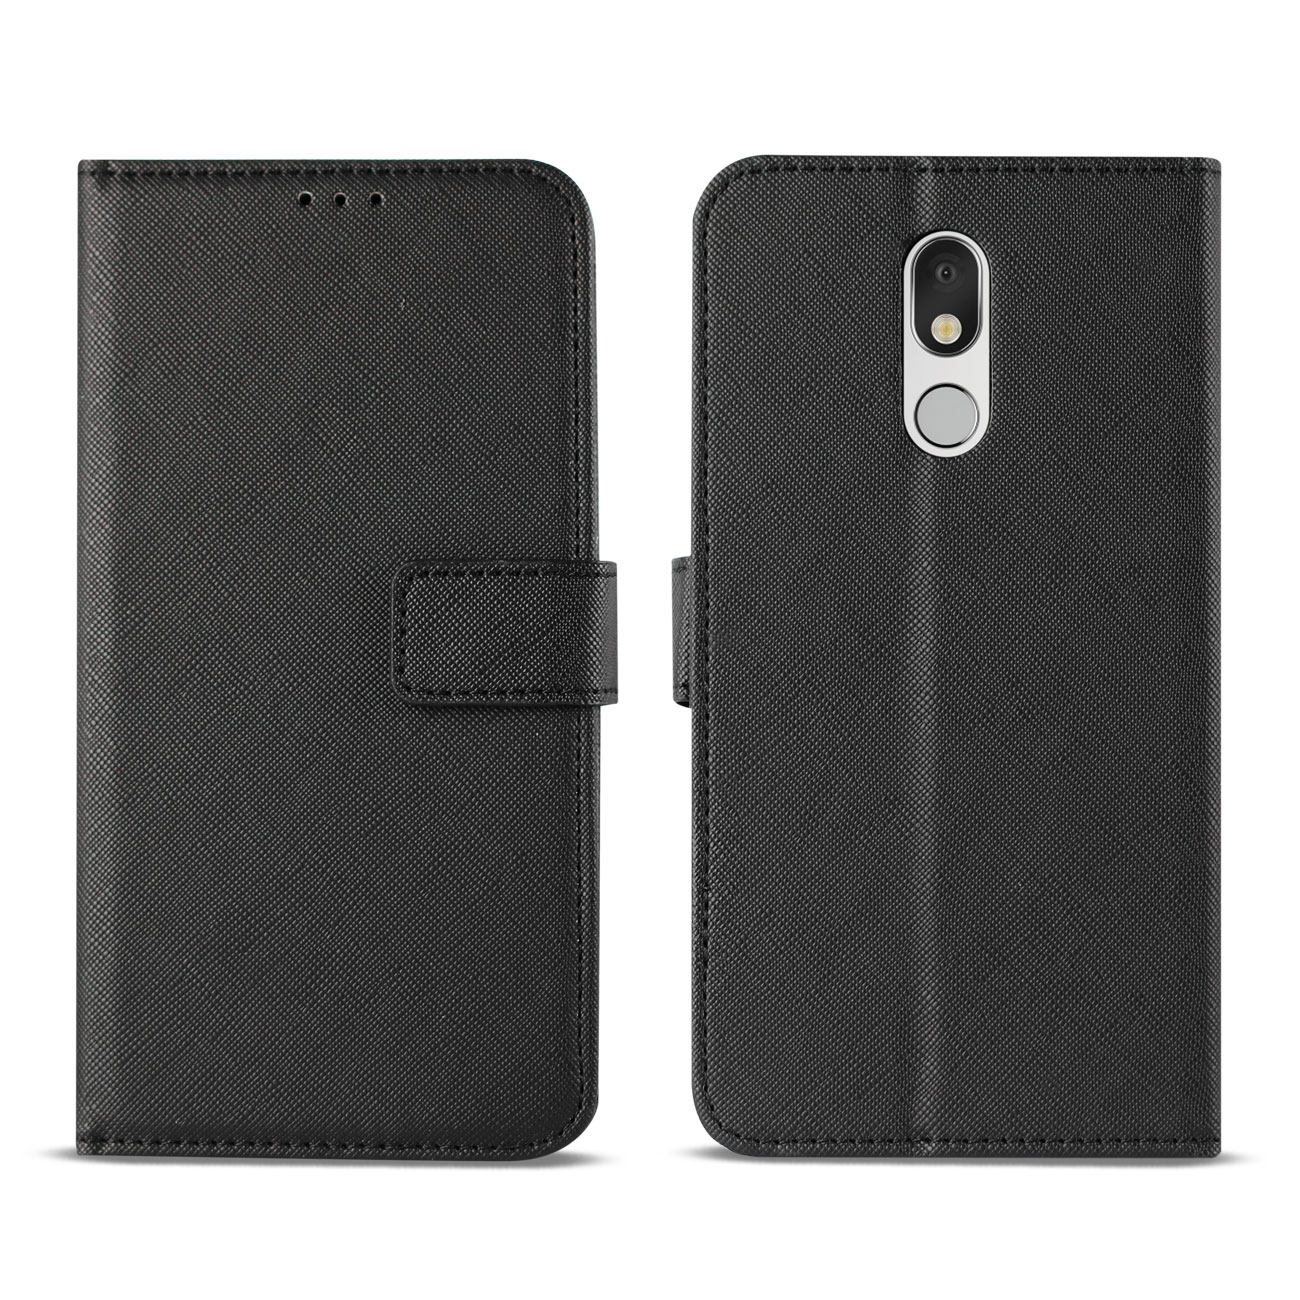 LG STYLO 5 3-In-1 Wallet Case In BLACK